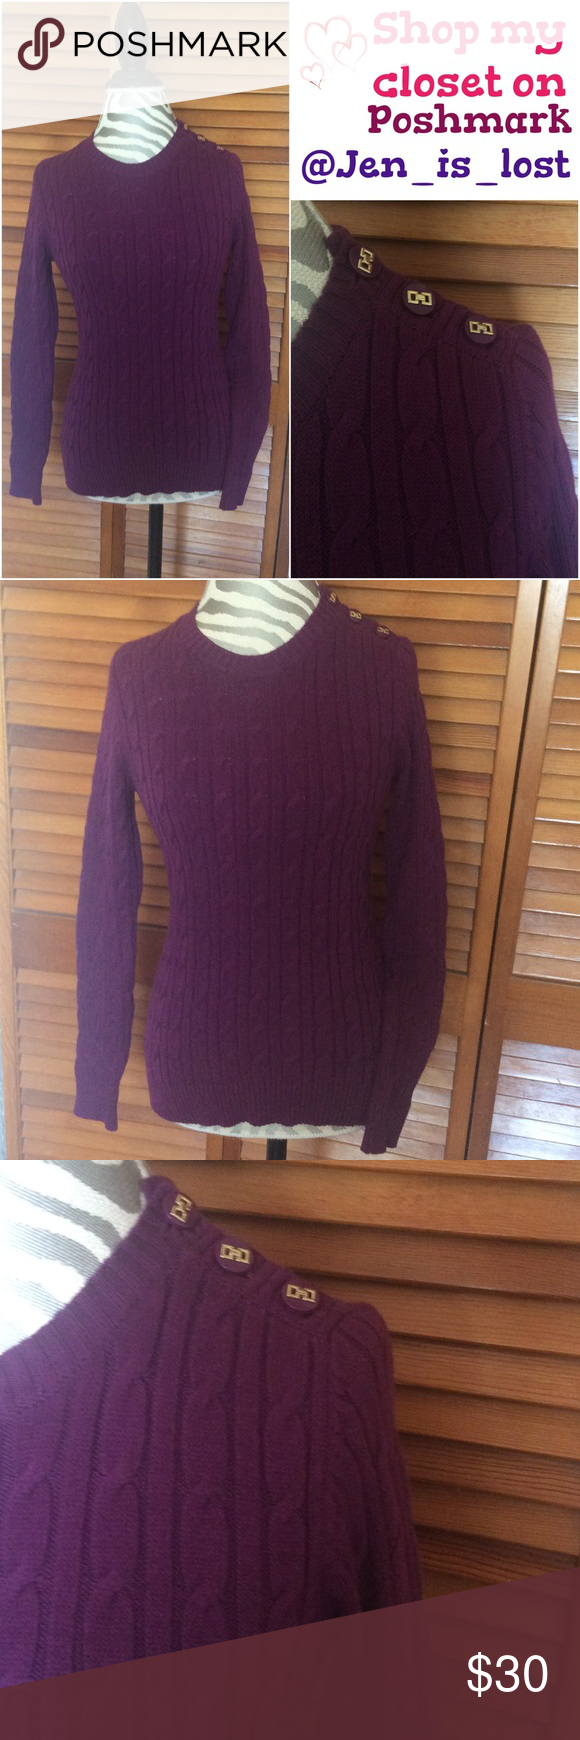 "🎄BOGO 50% OFF🎄 Cable Sweater P/S Cotton/nylon/metallic Machine wash. Crew neckline Pullover style Long sleeves; button detail at shoulder Cable-knit Easy fit.  Color is Napa Vineyard.  Measures 16"" across the bust (with stretch) and is 24"" in length. Charter Club Sweaters"